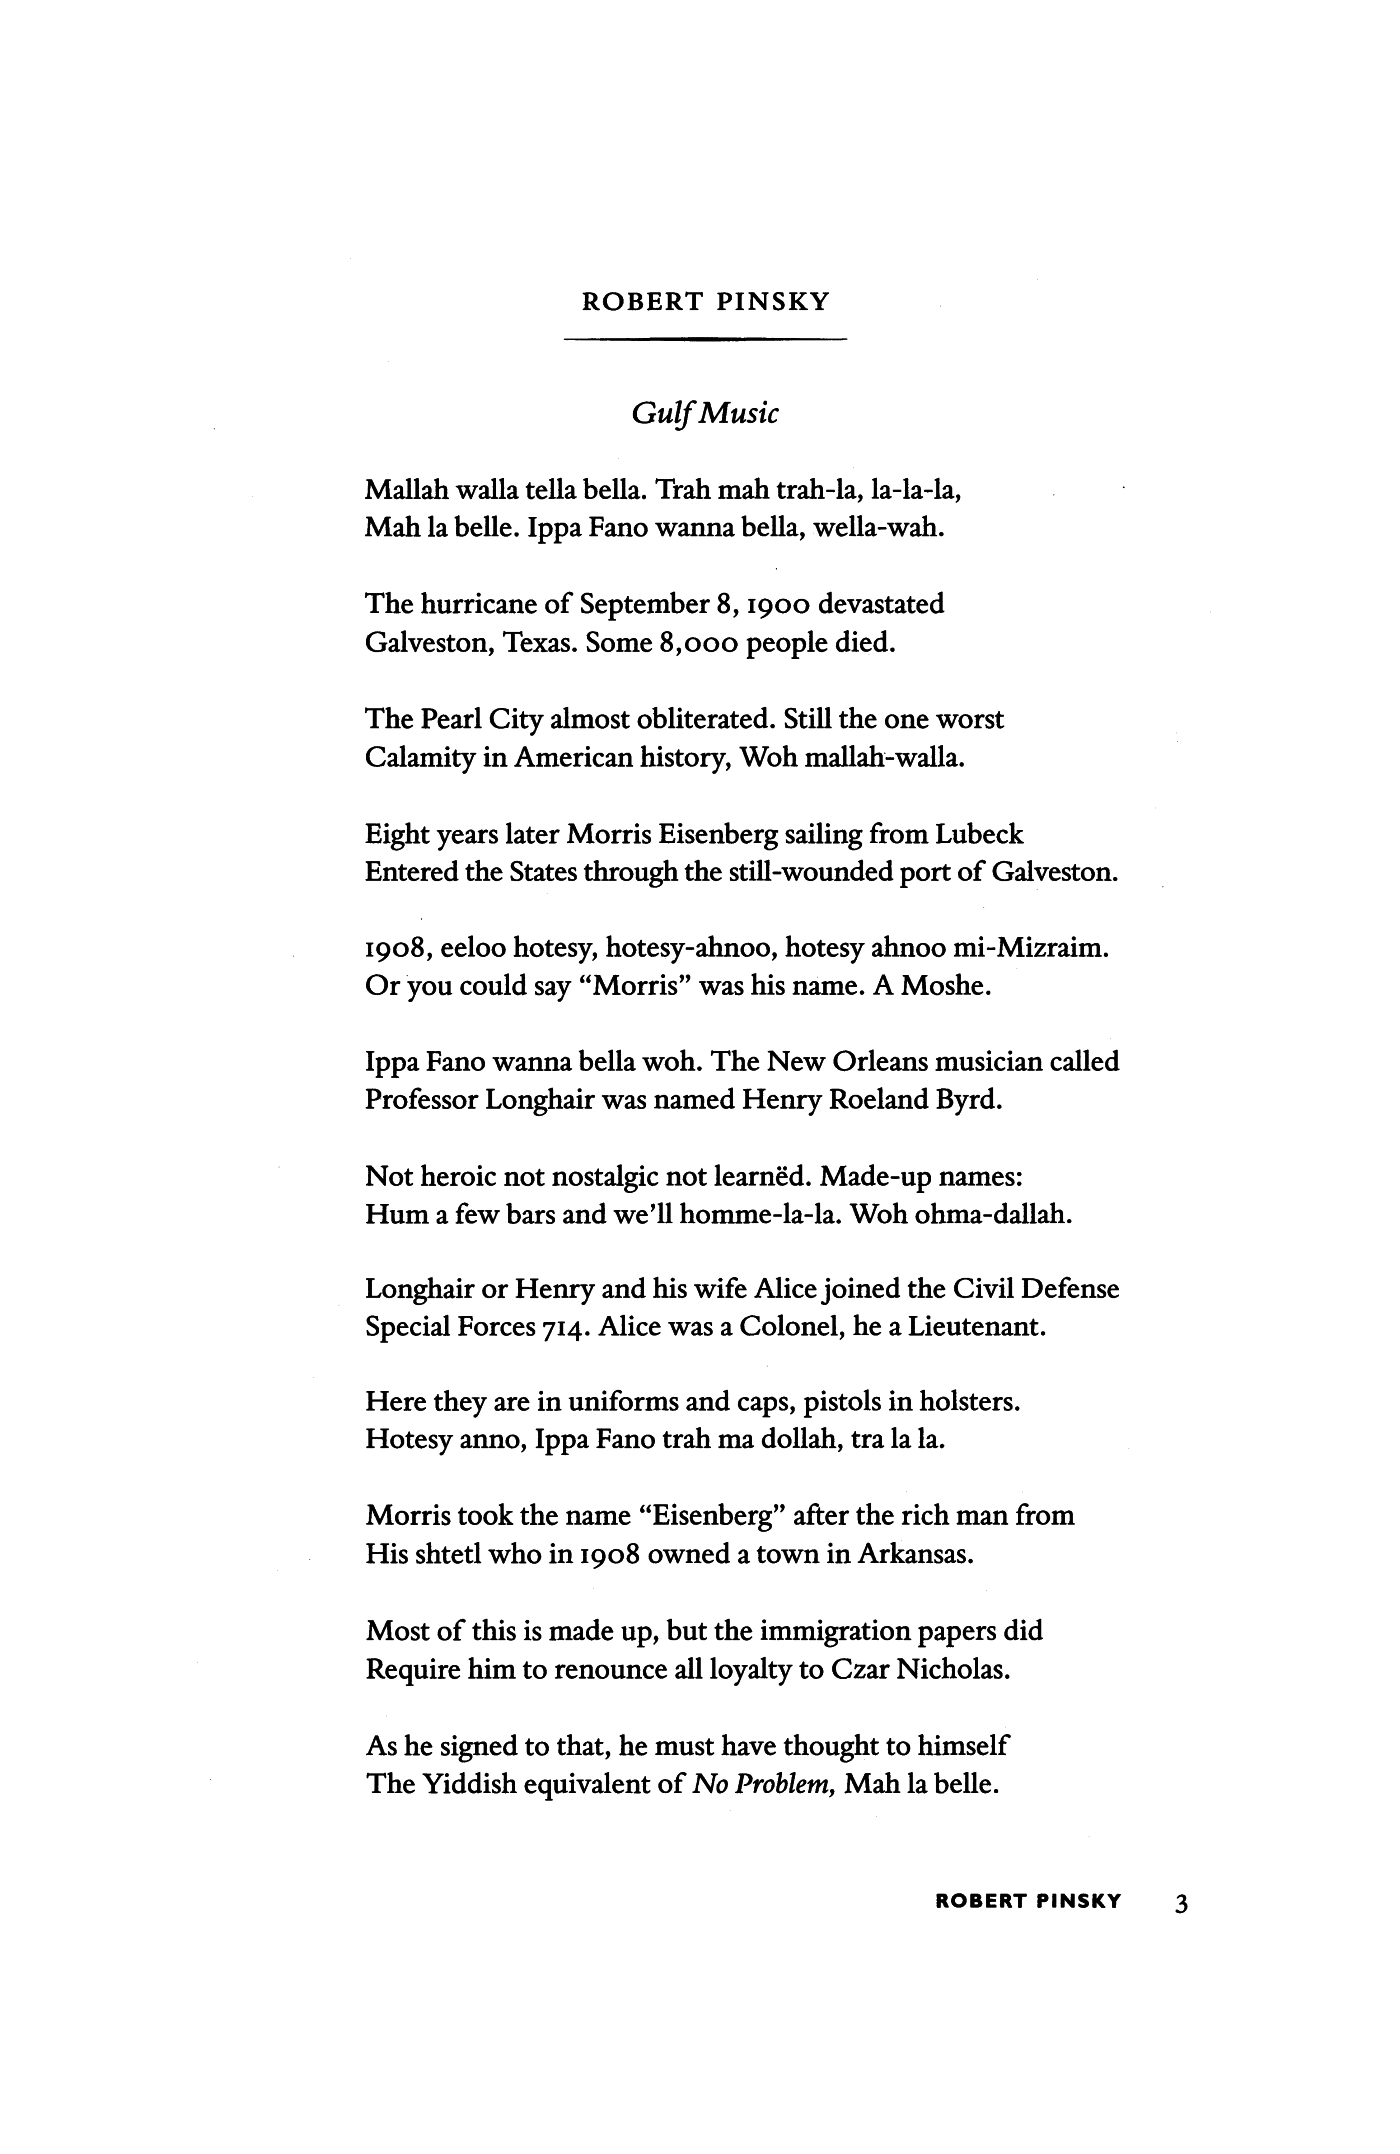 Poems About Immigration 1